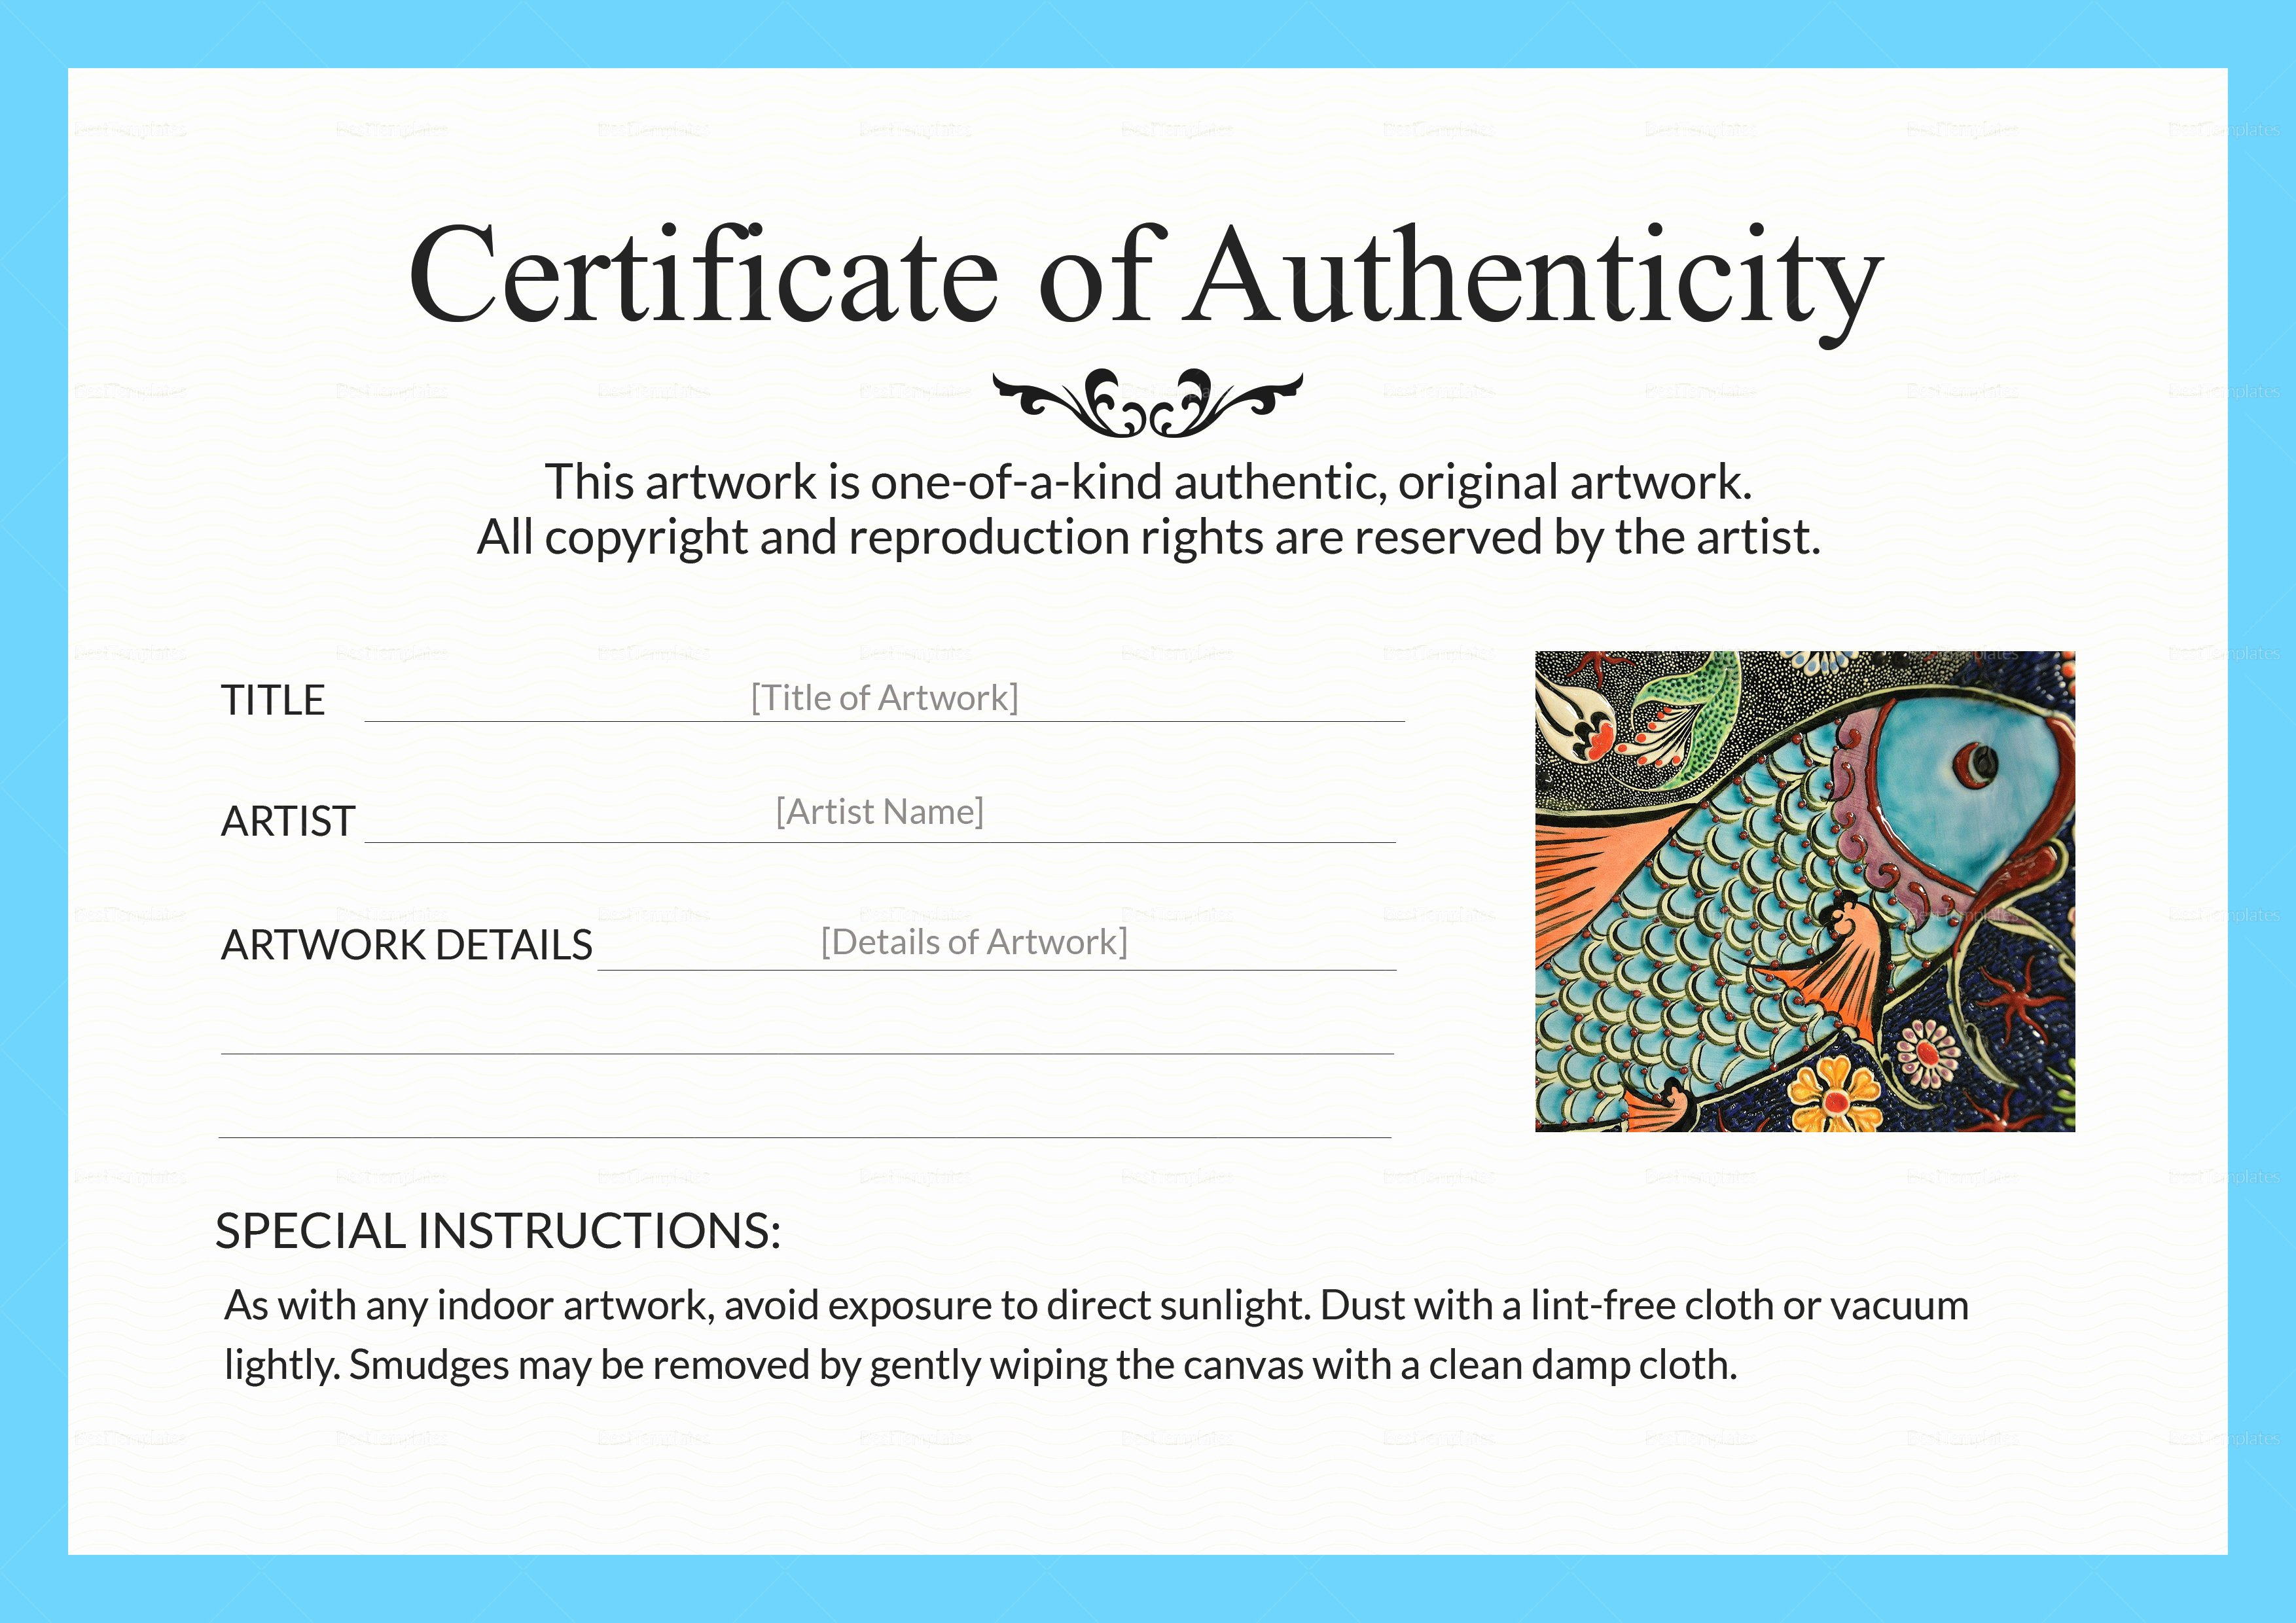 Certificate Of Authenticity Artwork Template Unique Artwork Authenticity Certificate Design Template In Psd Word